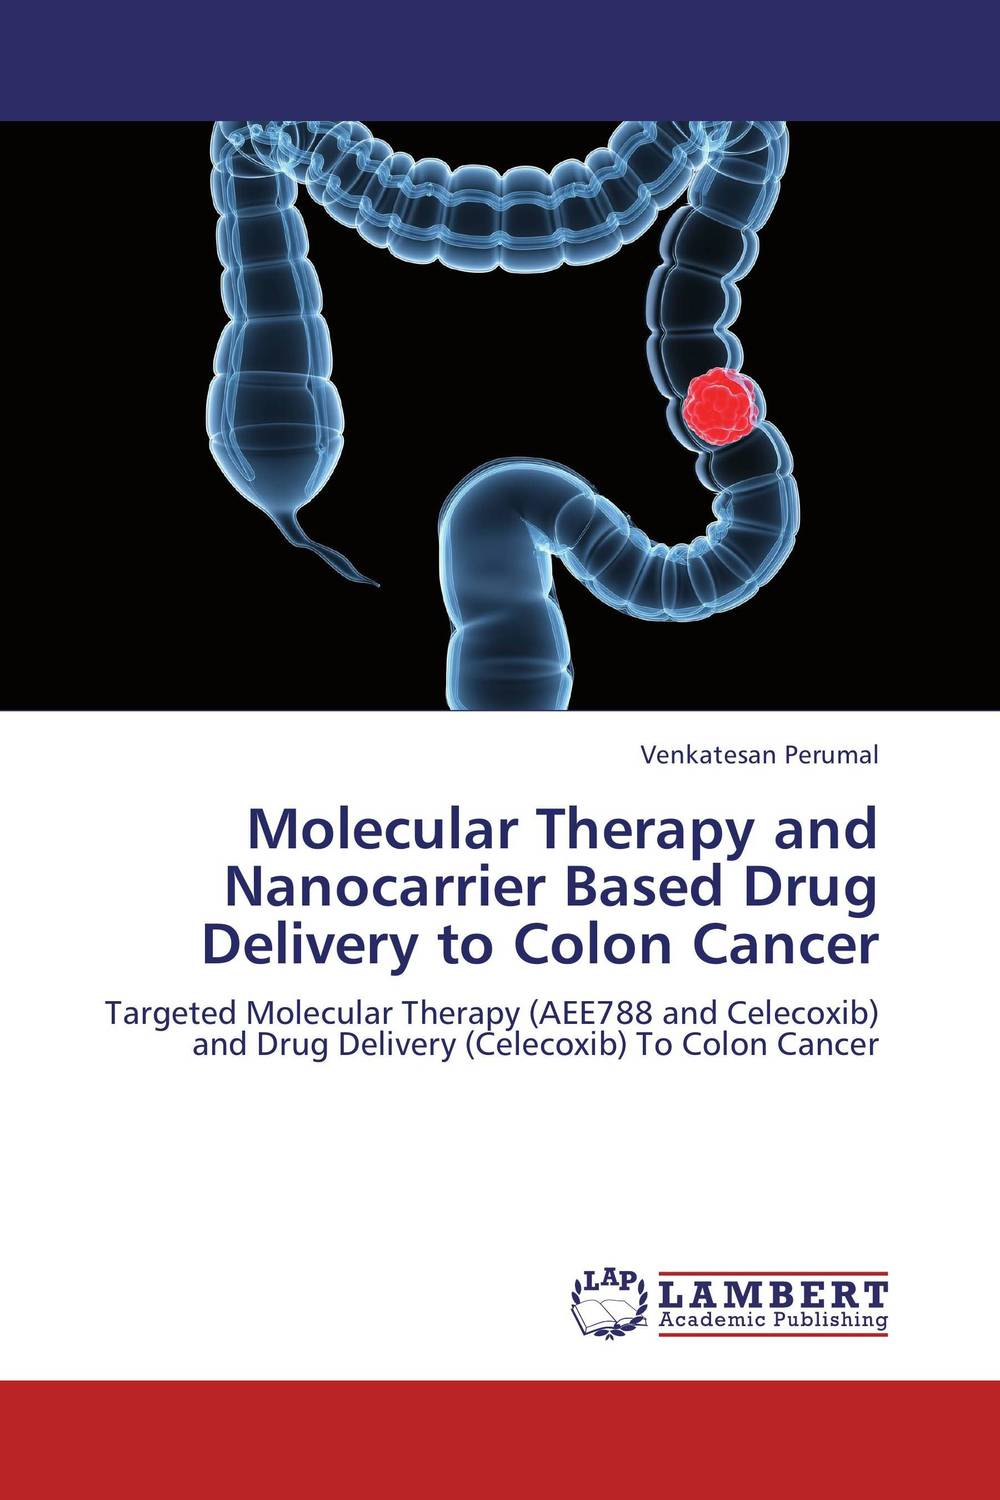 Molecular Therapy and Nanocarrier Based Drug Delivery to Colon Cancer ranju bansal rakesh yadav and gulshan kumar asthma molecular basis and treatment approaches